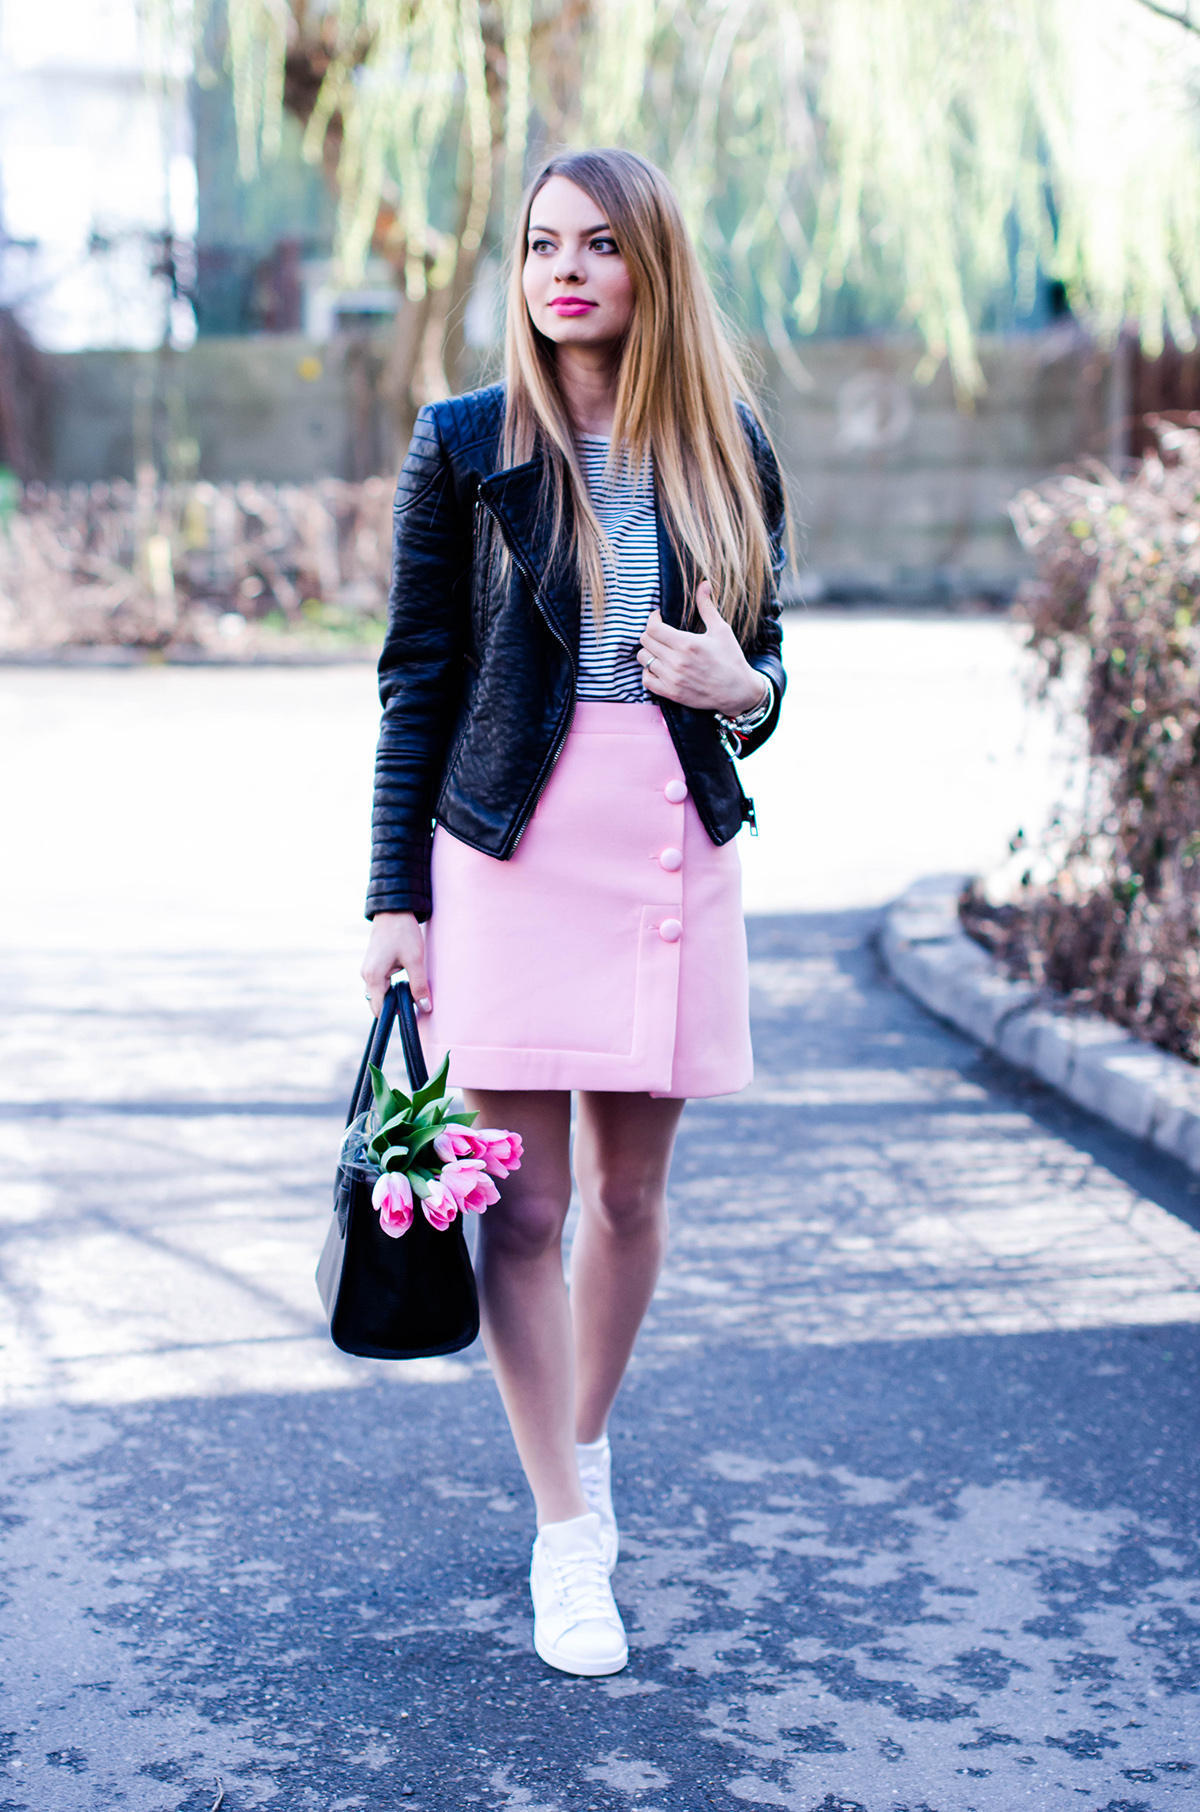 pink-a-line-skirt-adidas-stan-smith-leather-jacket-spring-outfit-pink-tulips (4)